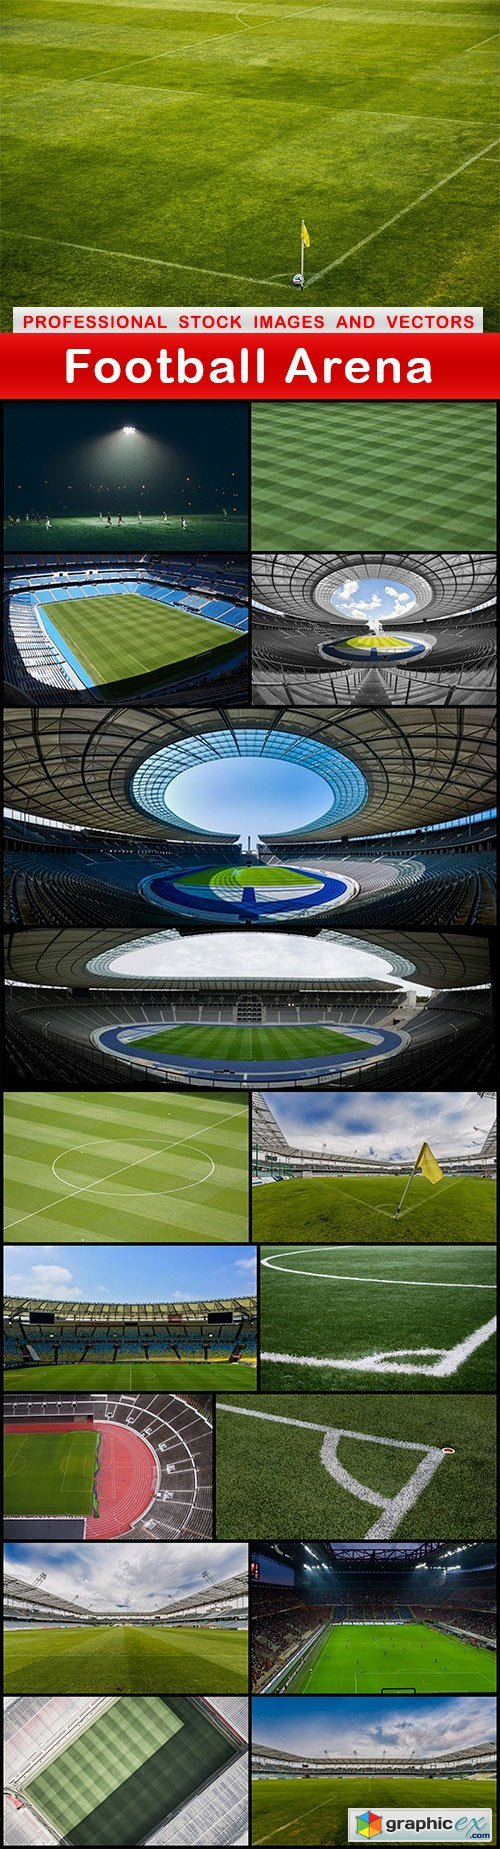 Football Arena - 17 UHQ JPEG